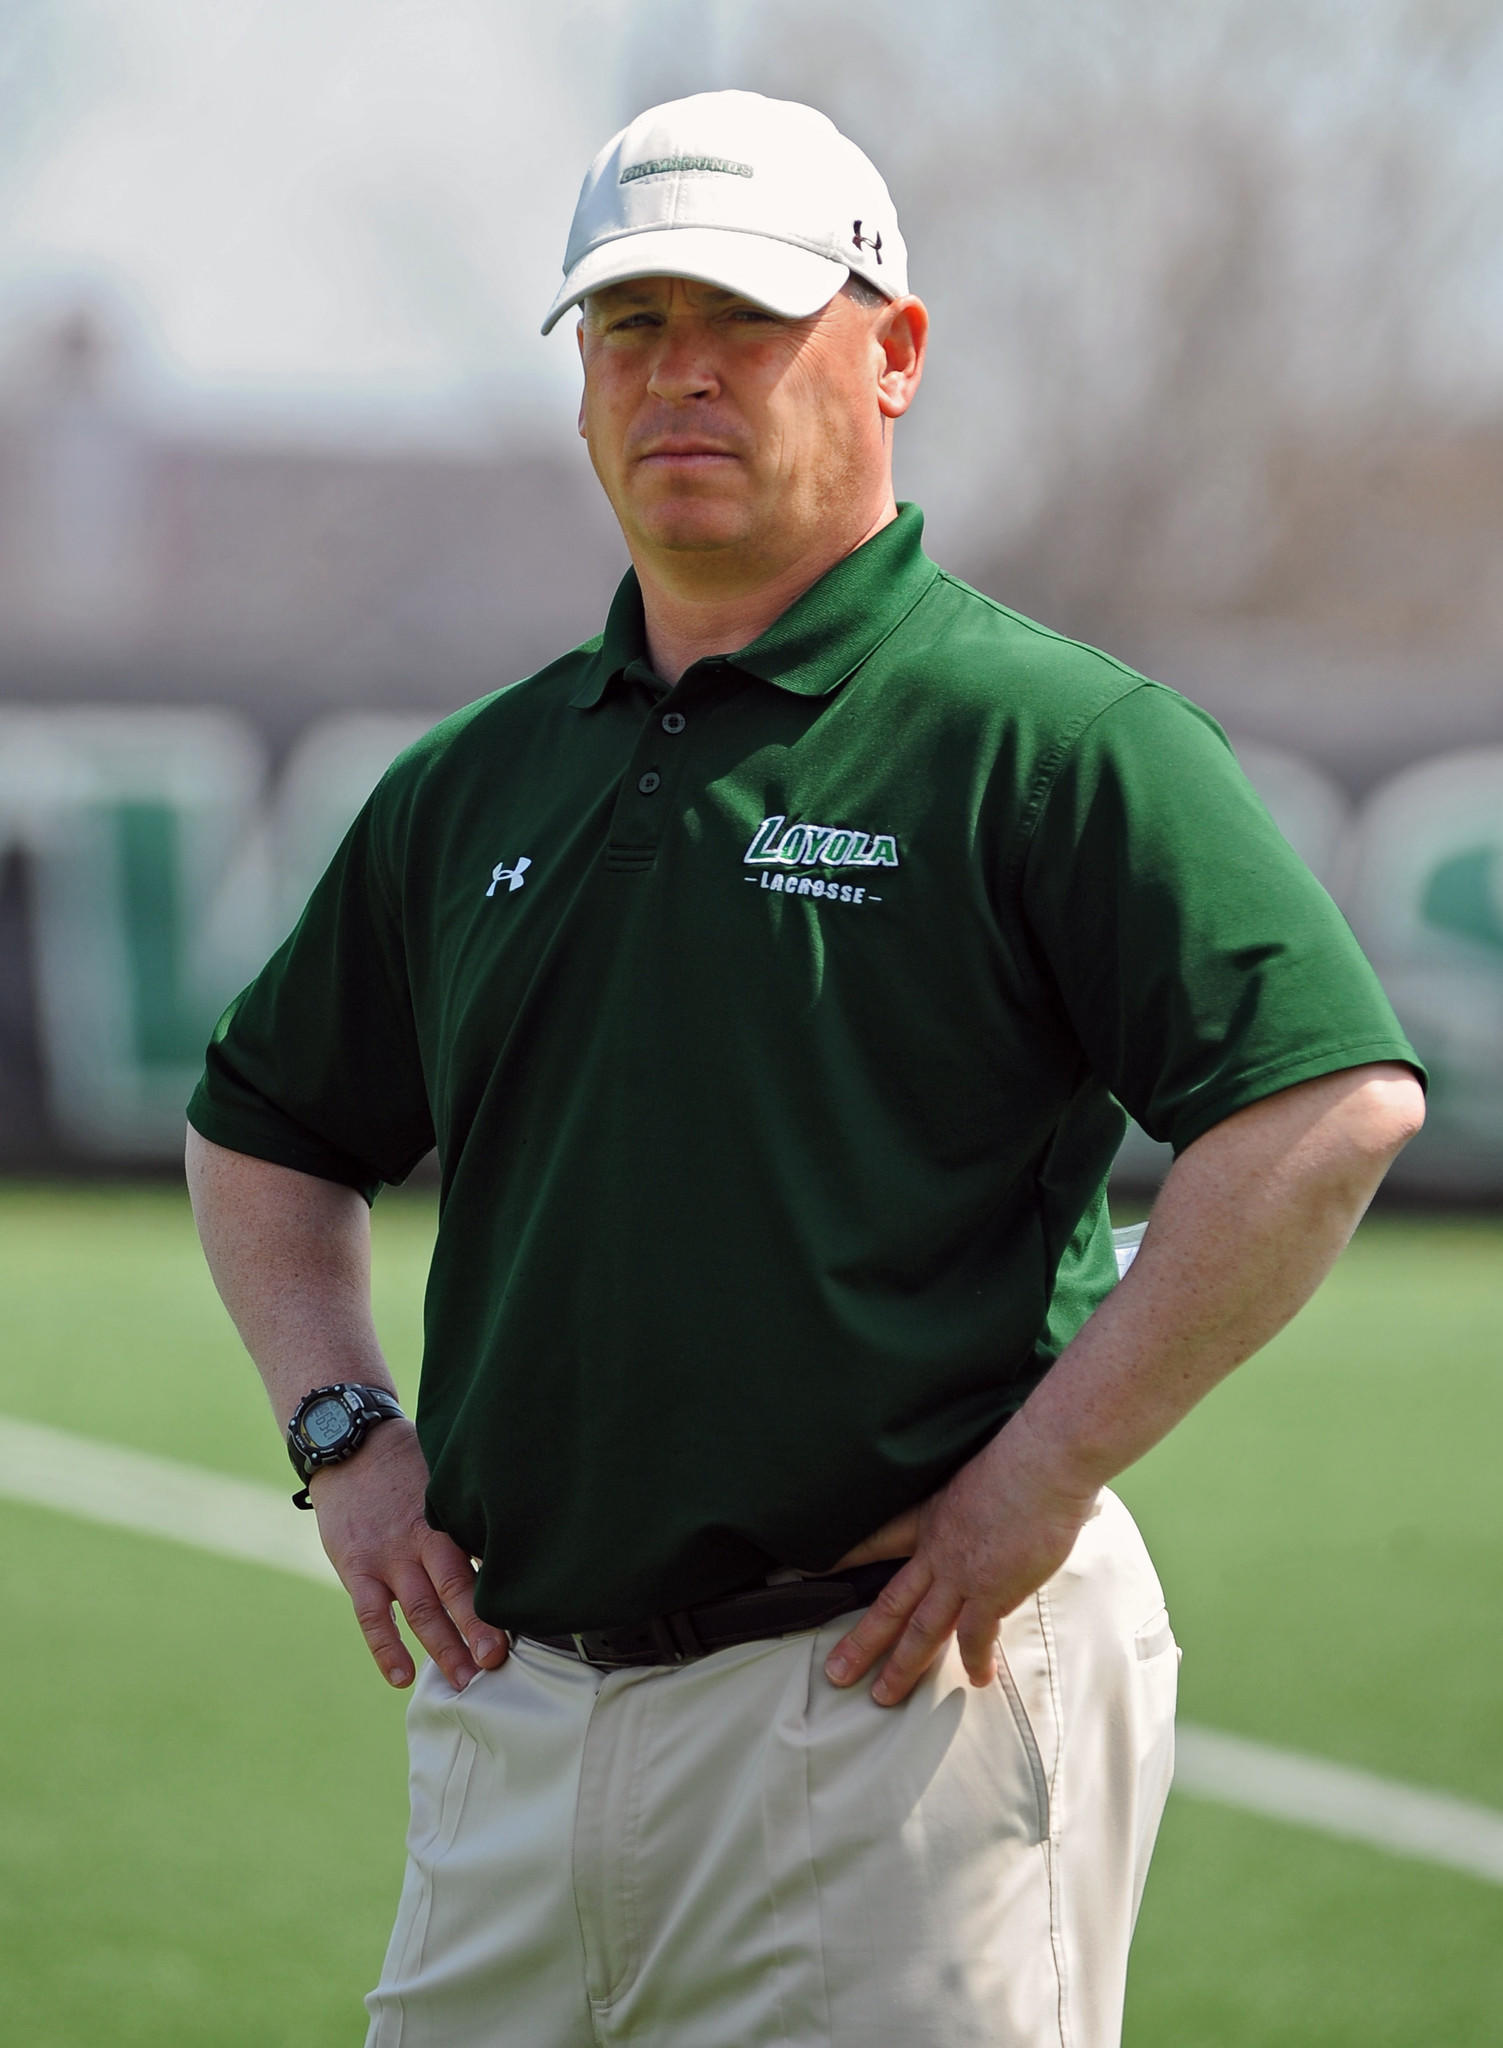 Loyola coach Charley Toomey is pictured before his team played Boston college on April 12.